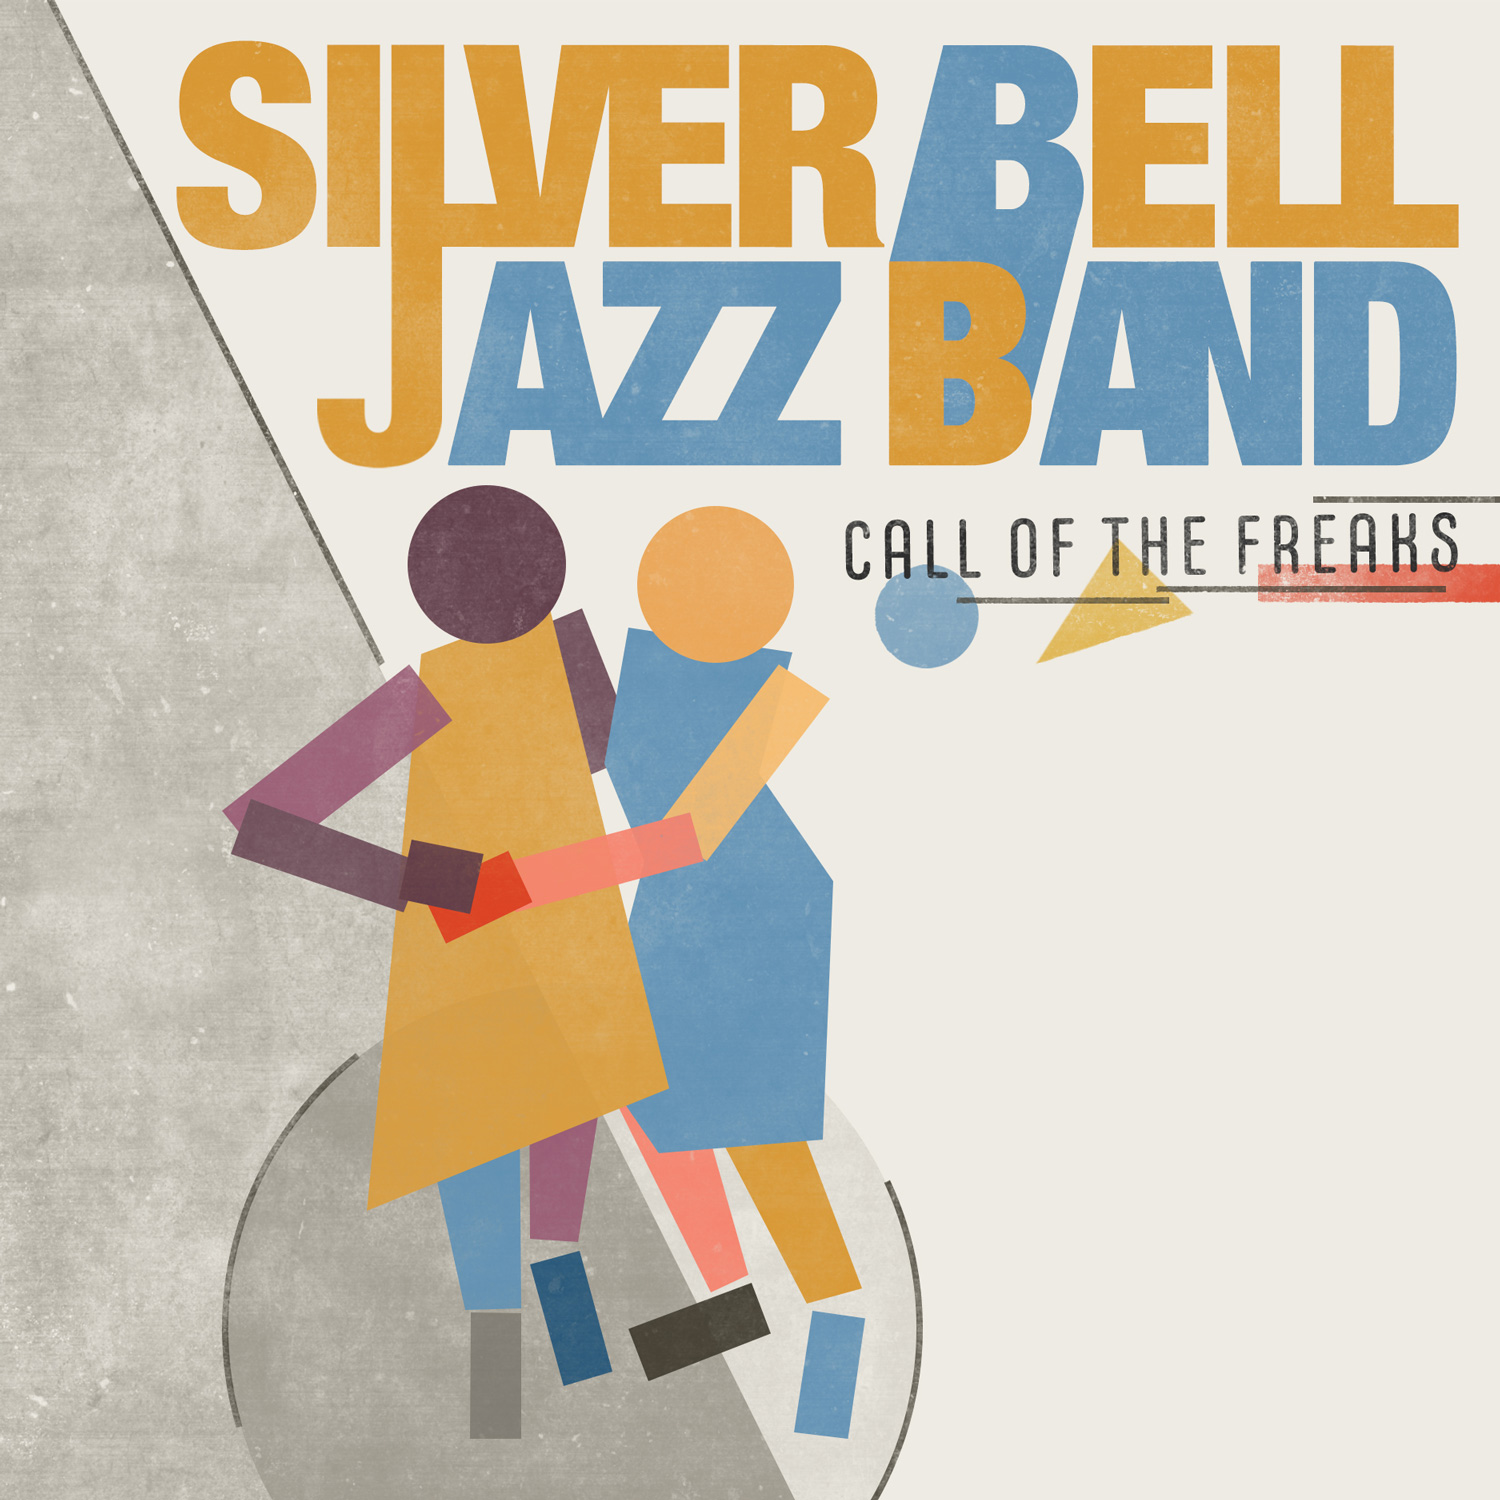 Call of the freaks Silver Bell Jazz Band album front cover design